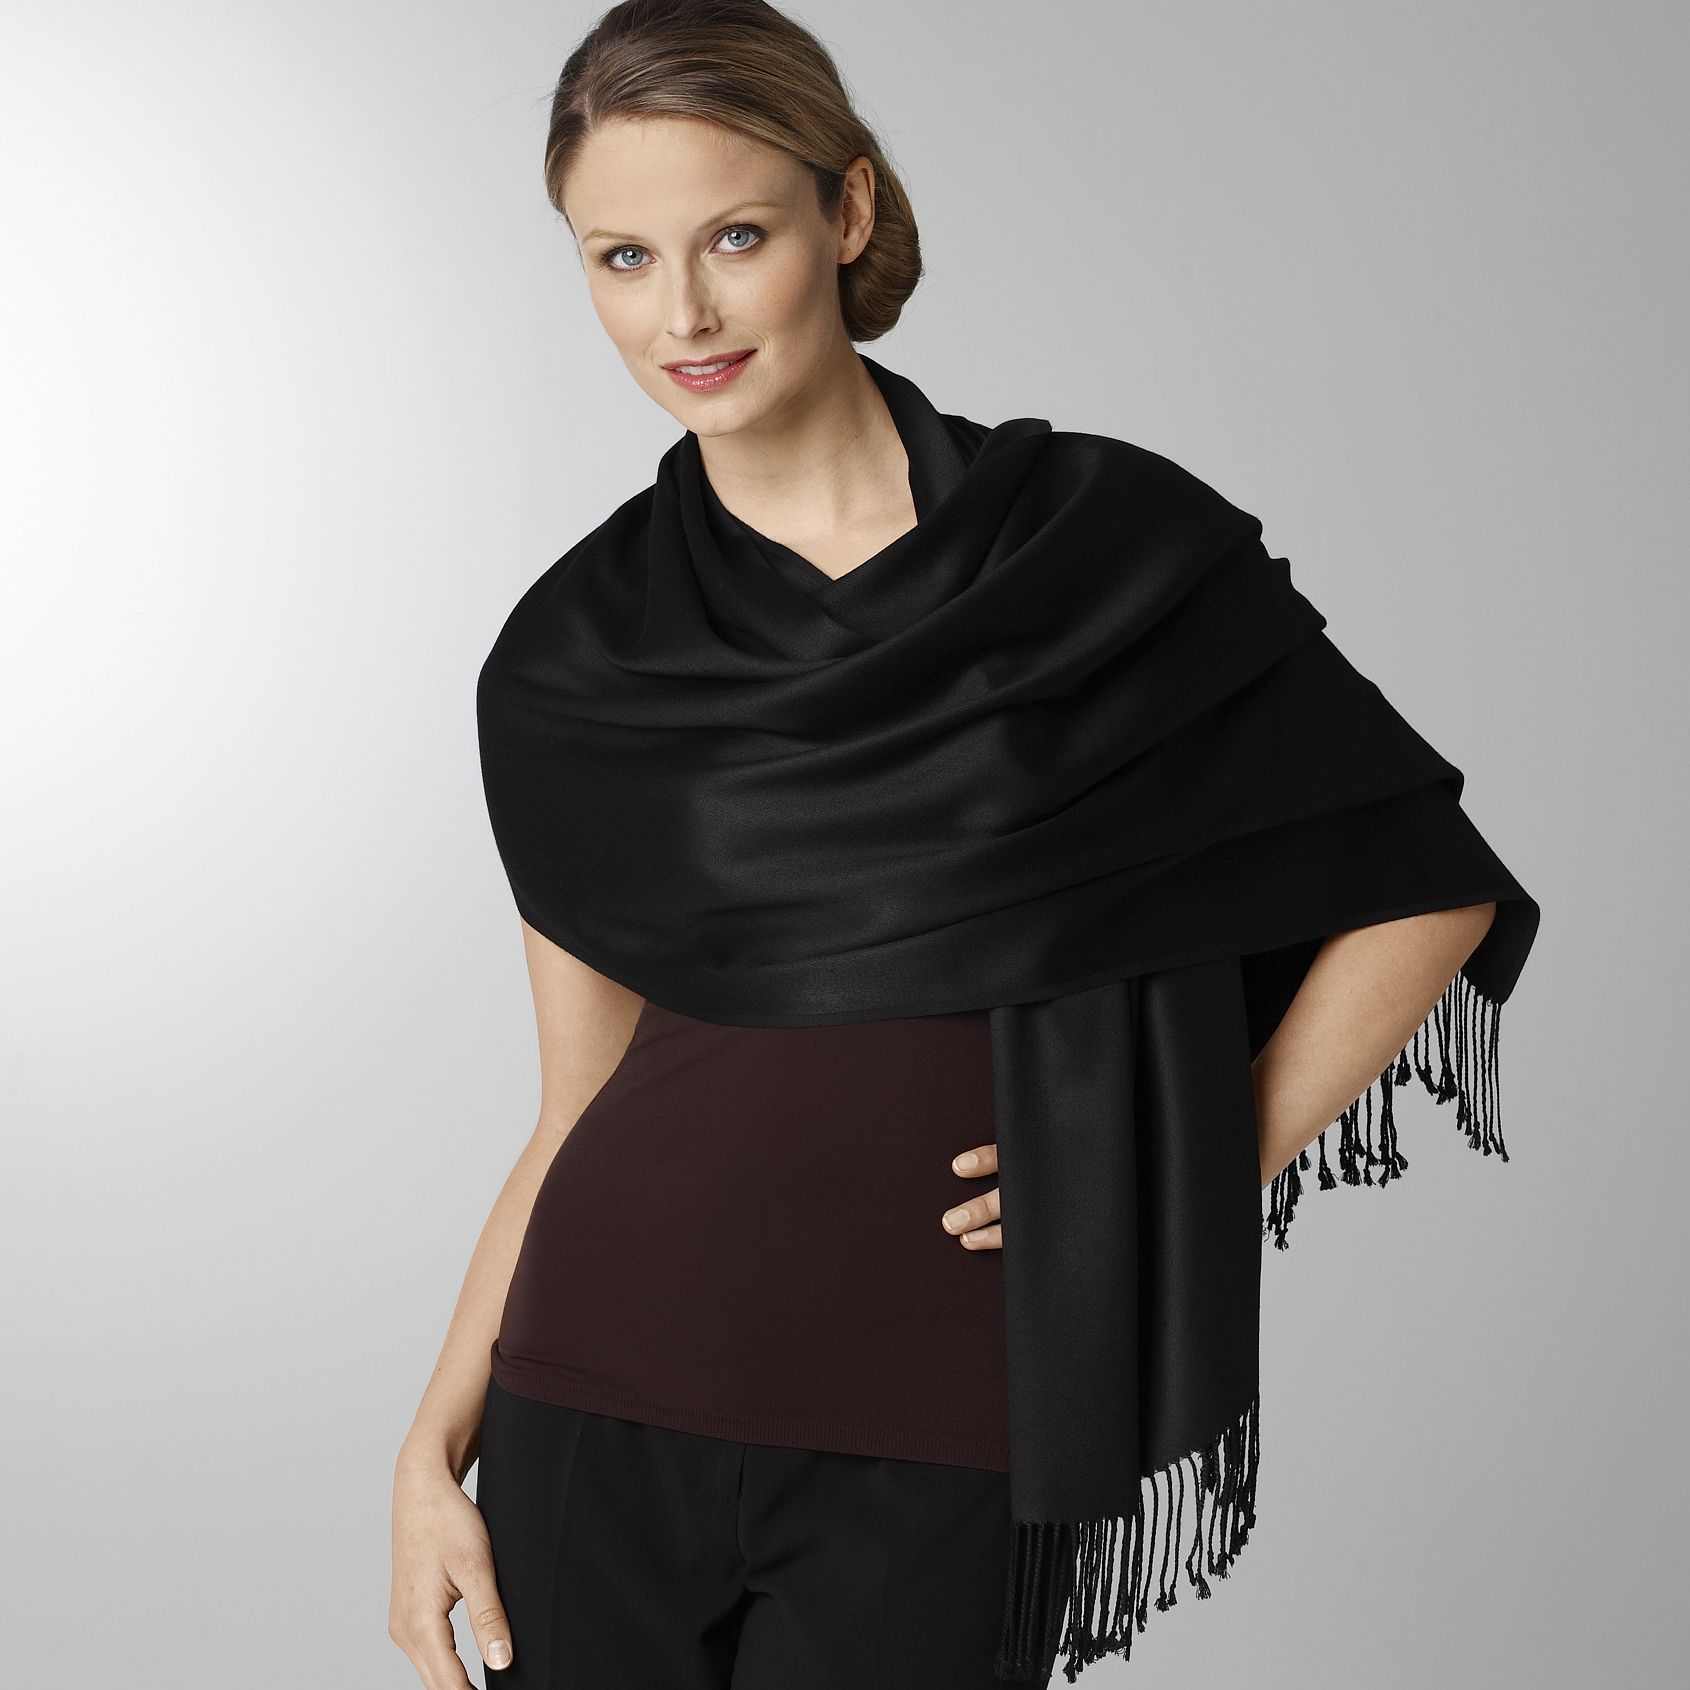 Elegant Outerwear The Pashmina  CyberStylist4u  CyberStylist4u Pashmina Scarf How To Wear